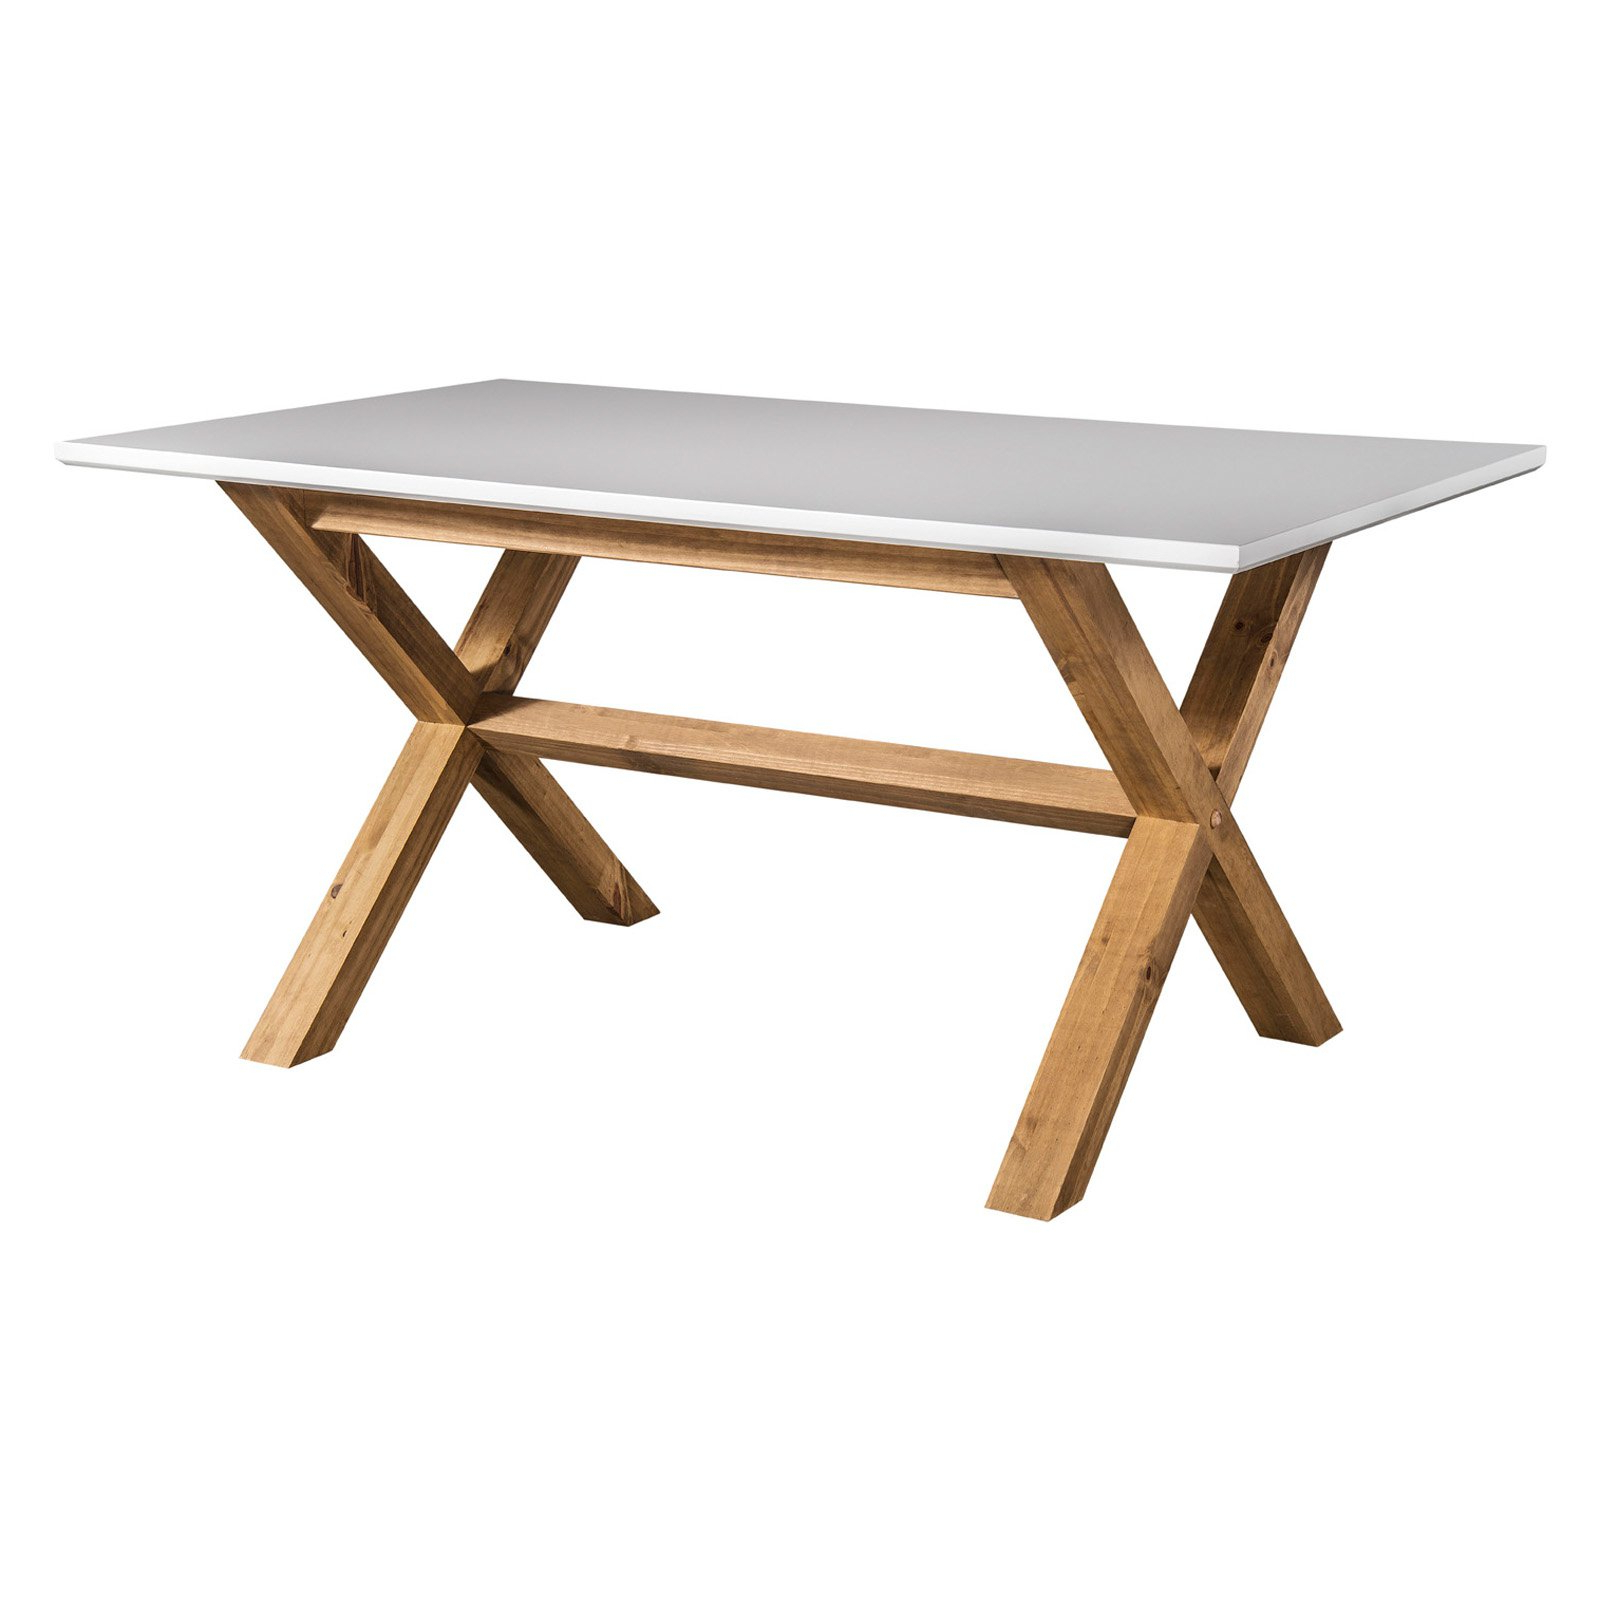 Rustic Mid Century Modern Barclay 6 Seating Dining Table In White And Natural Wood – Walmart With Regard To Best And Newest Rustic Mid Century Modern 6 Seating Dining Tables In White And Natural Wood (View 5 of 30)